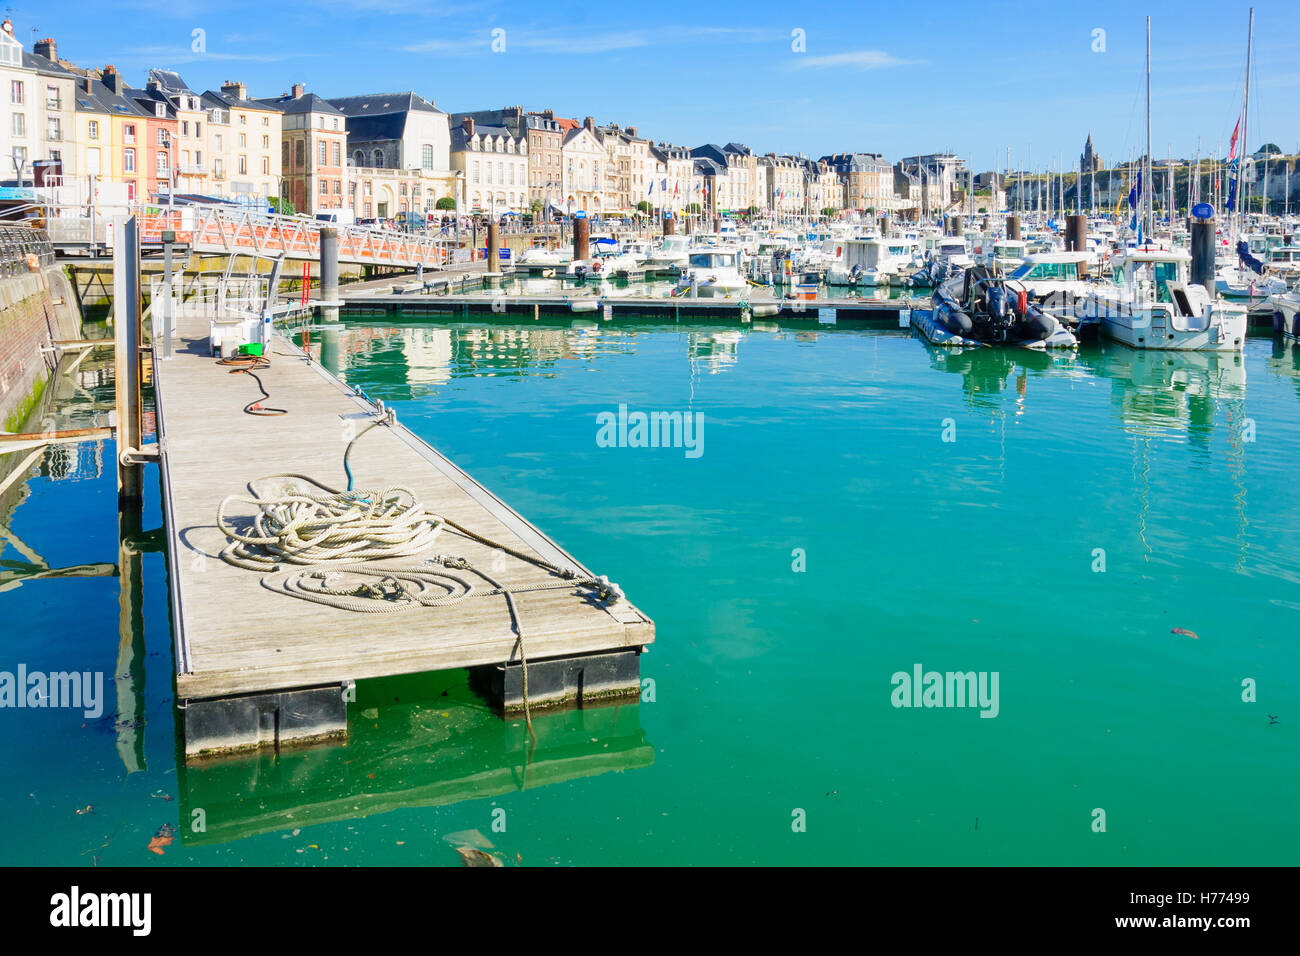 DIEPPE, FRANCE - SEPTEMBER 16, 2012: View of the port, with various boats, local businesses, locals and visitors, - Stock Image